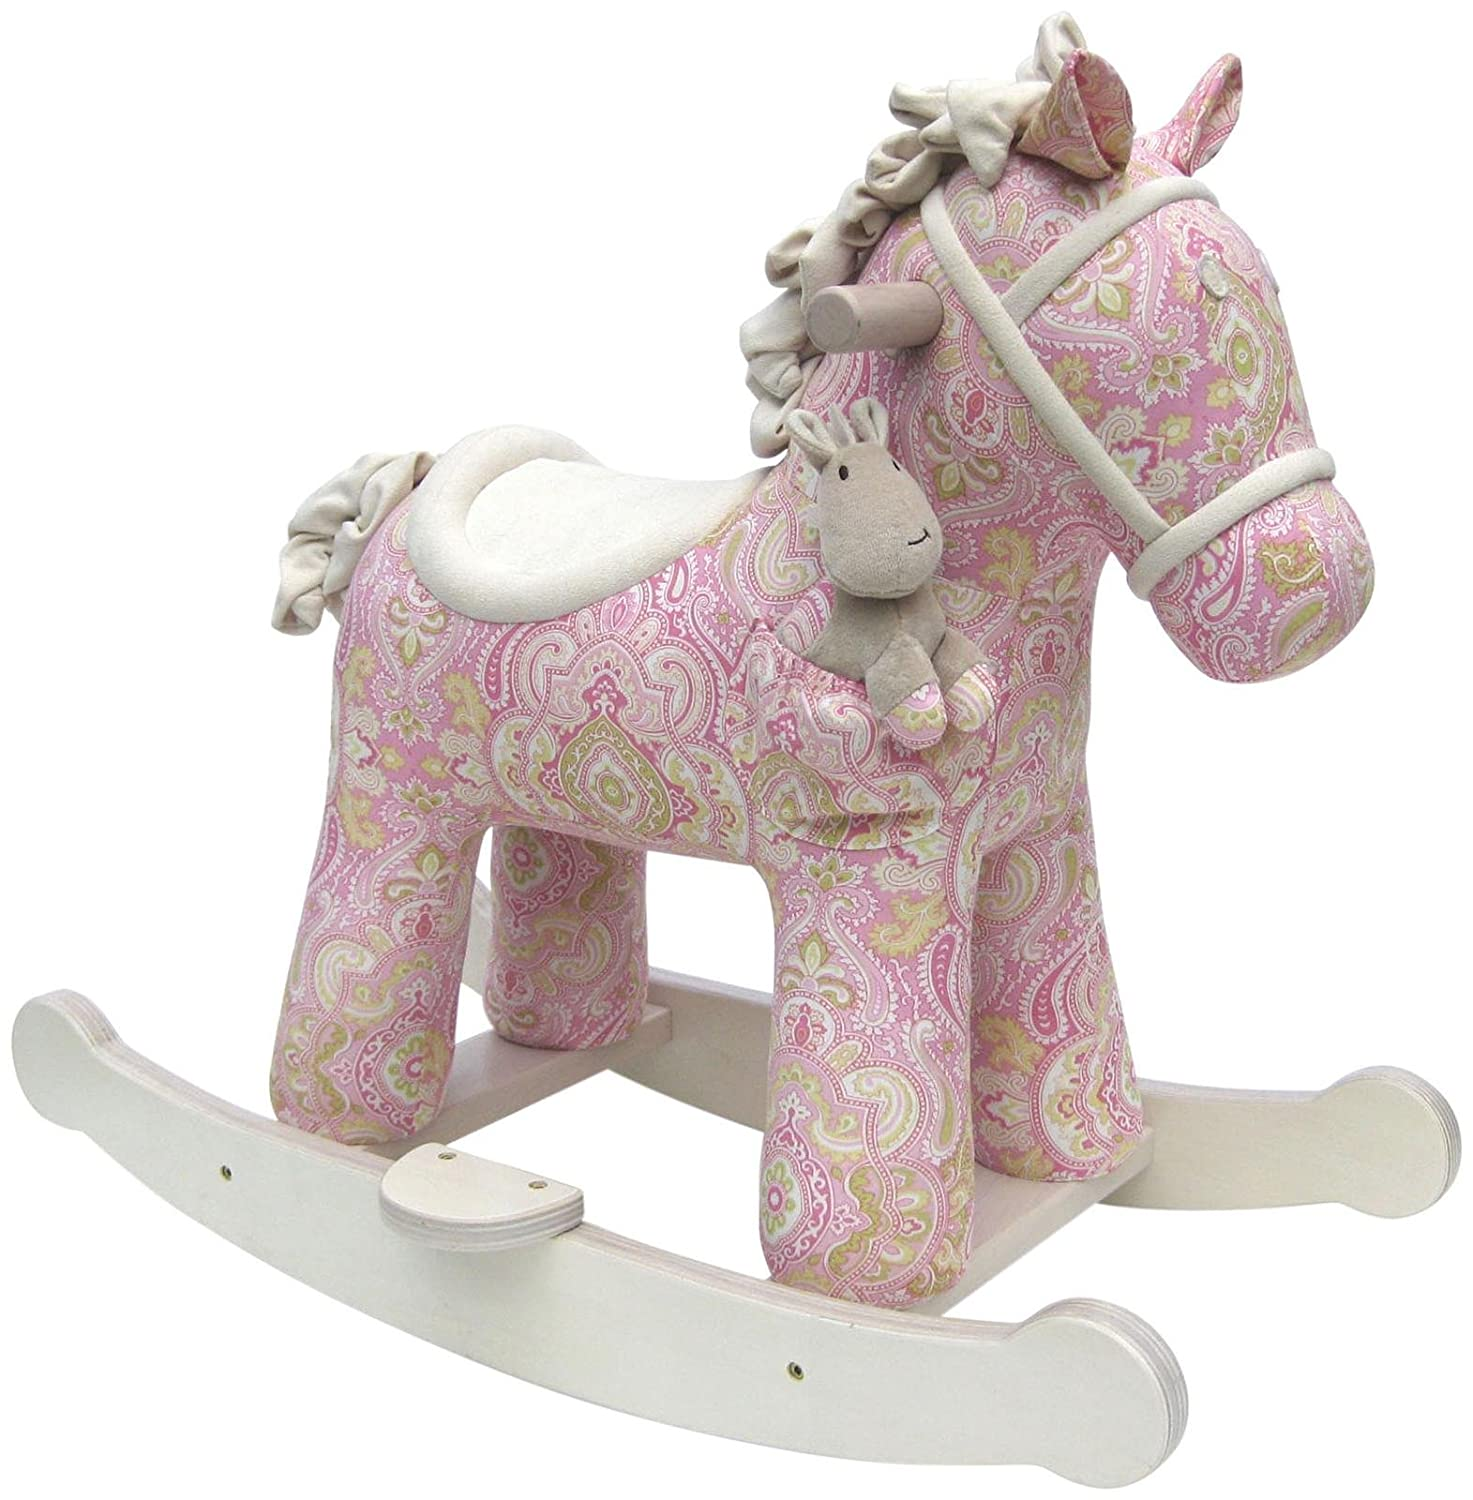 Little Bird Told Me - Pixie et Fluff - cheval à bascule infantile LB3022